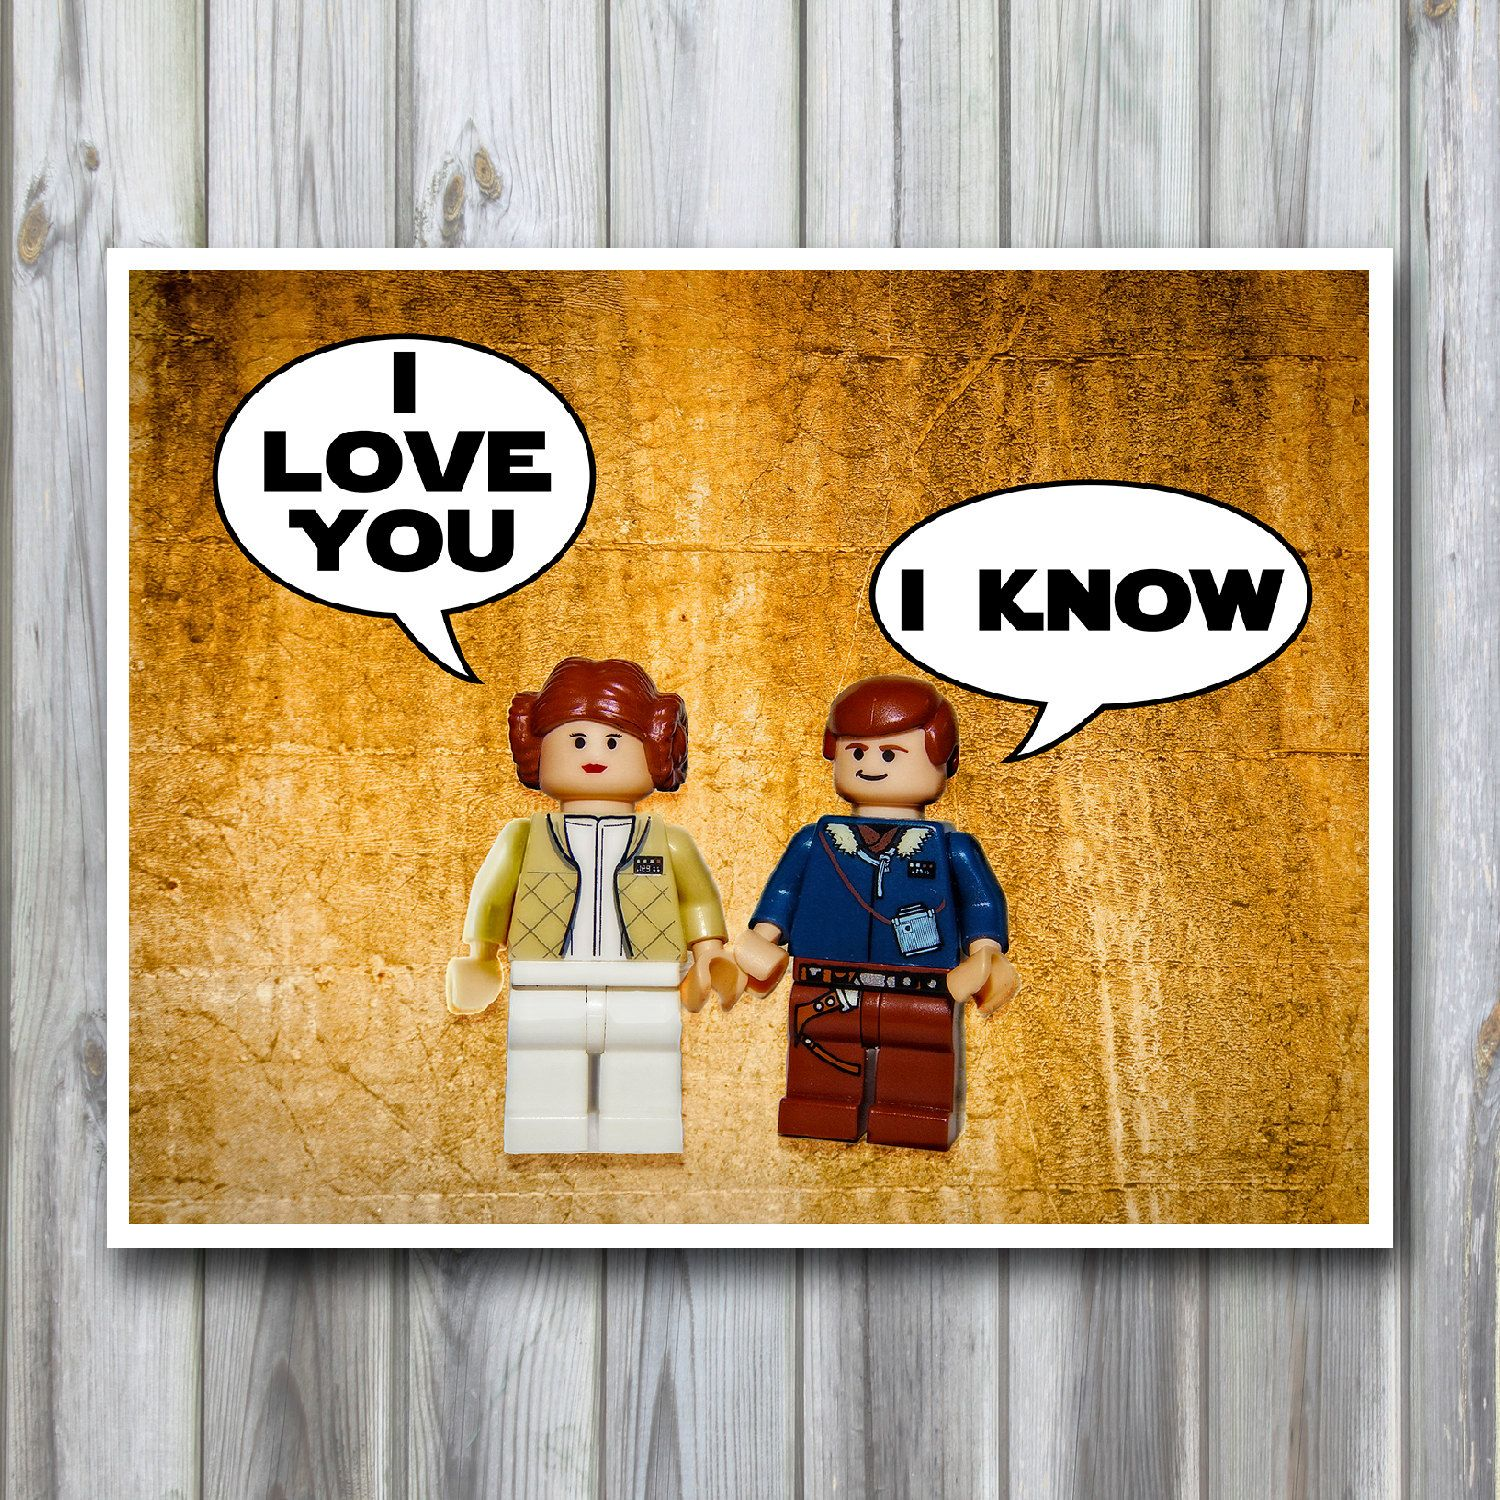 Star wars poster 11x14 Poster Print I love you I know Wall decor Han ...